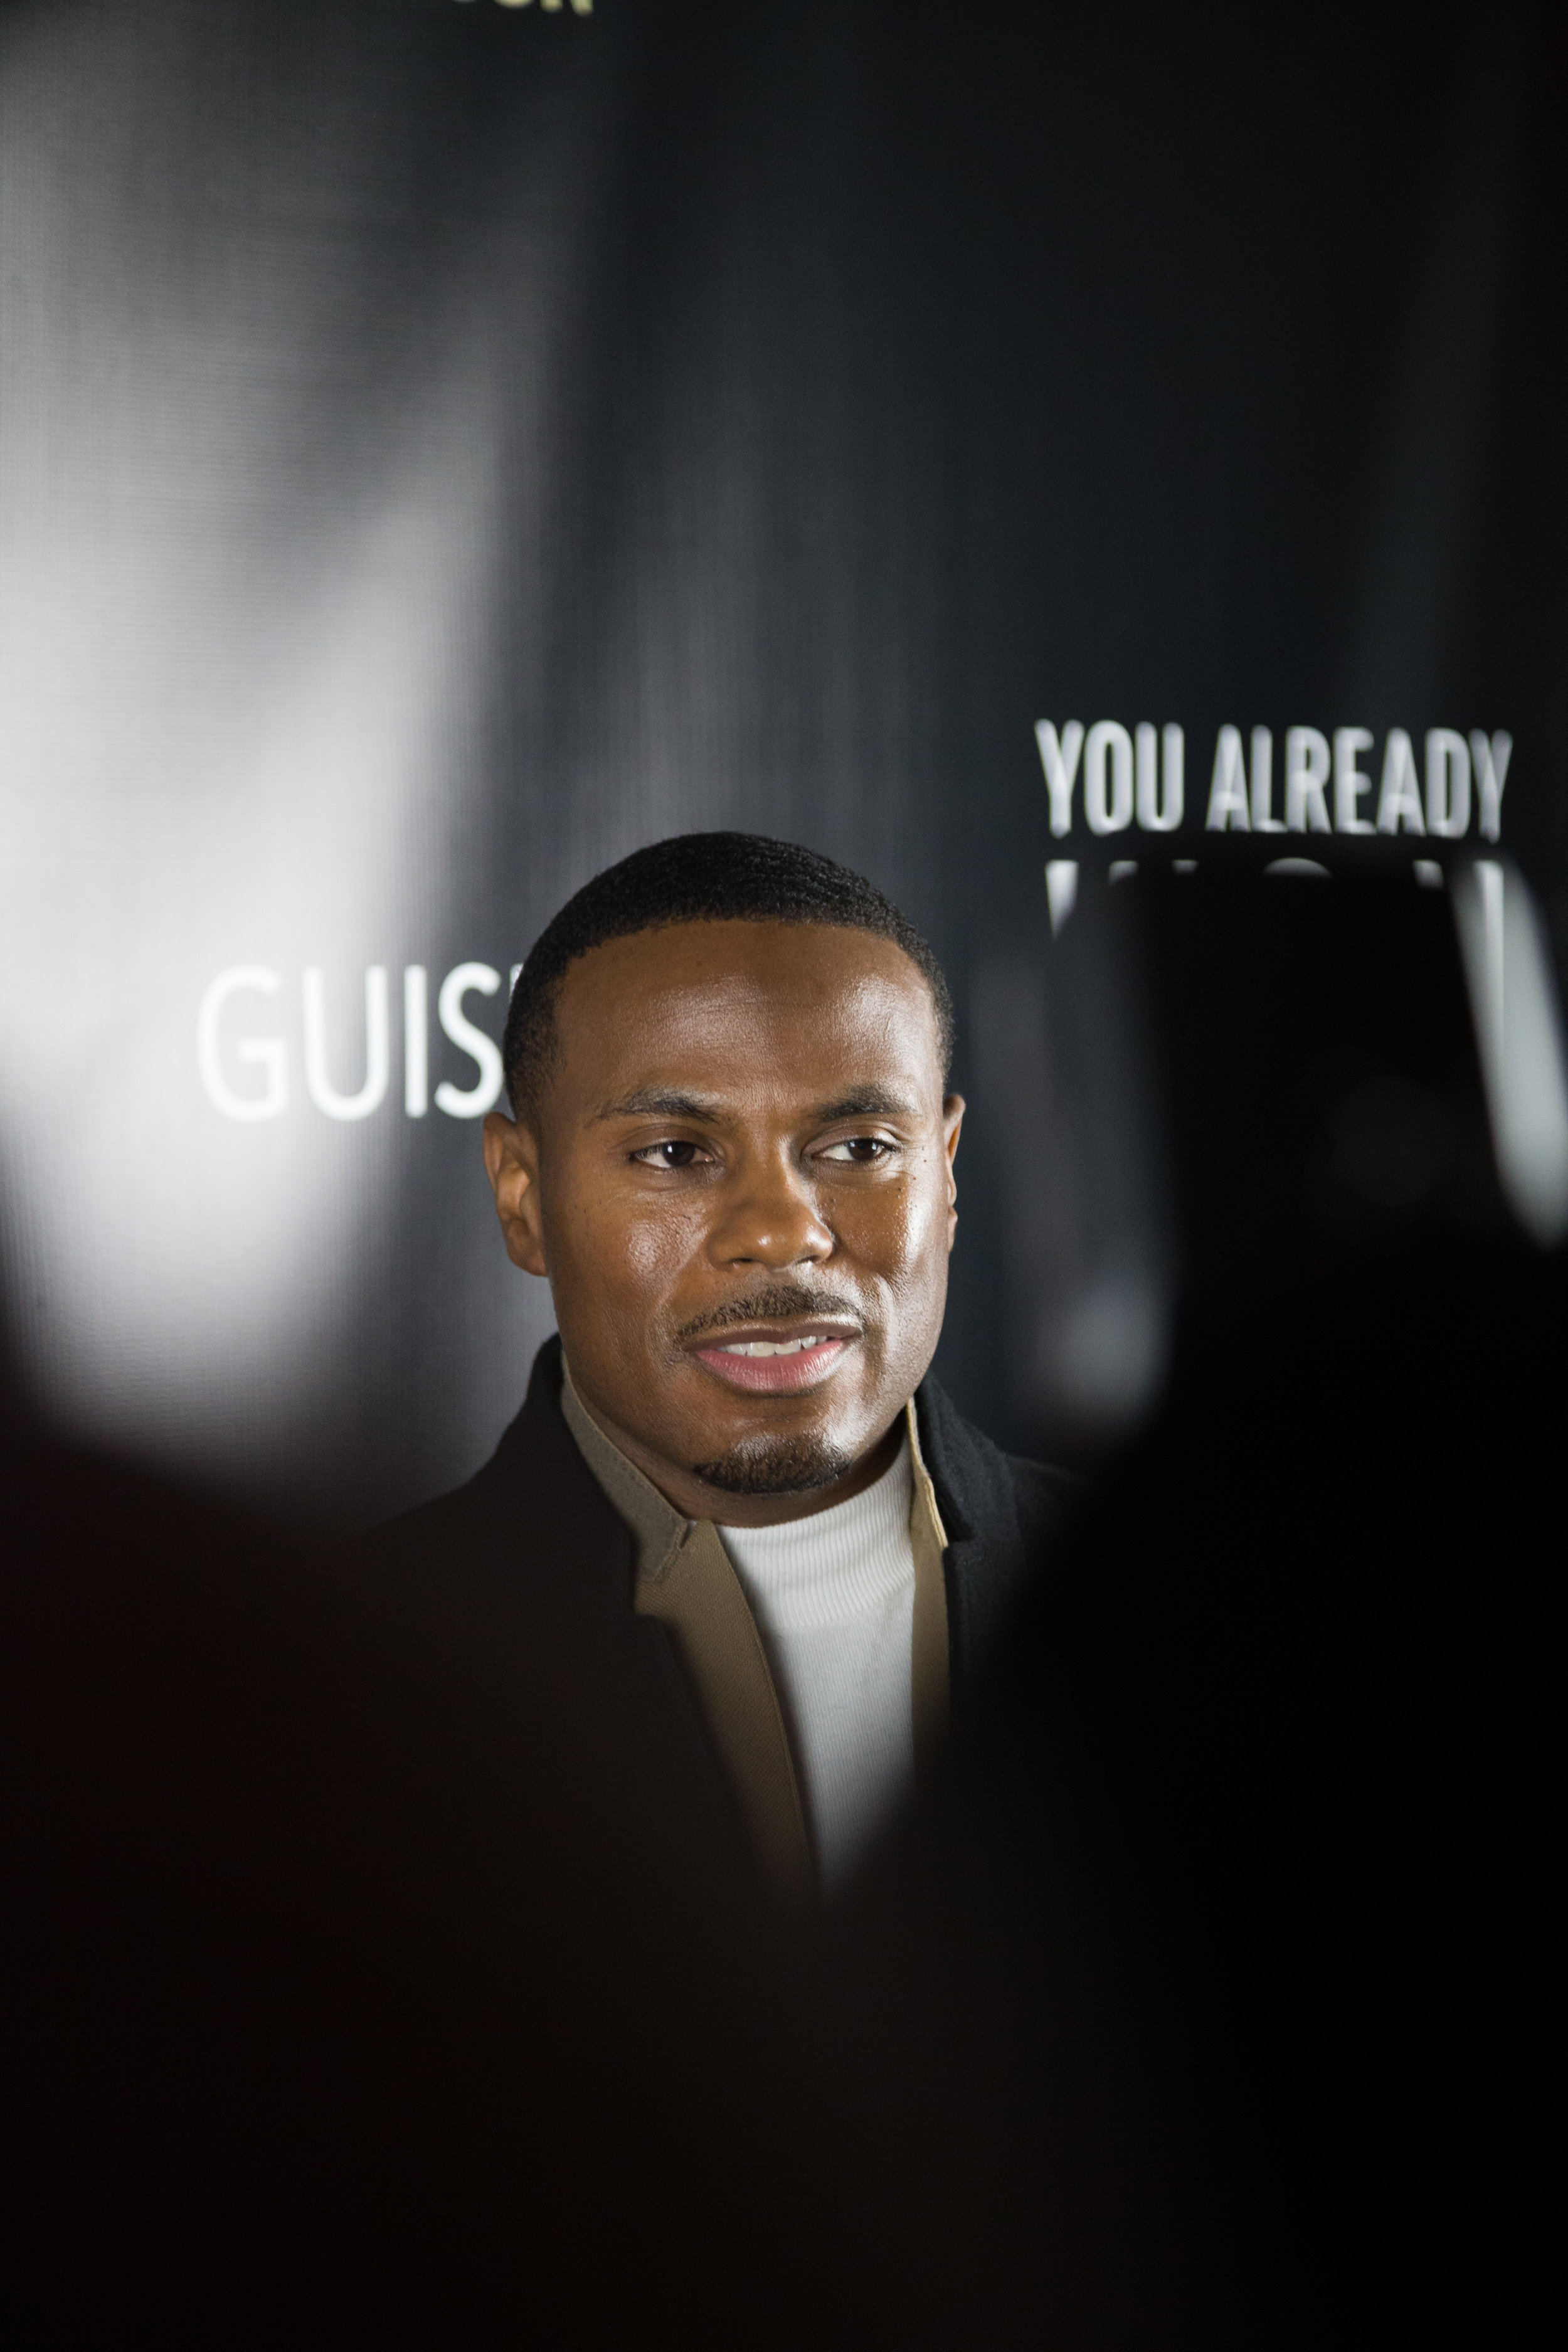 As a young man with few opportunities, Aron Gadson turned to street life quickly and earned himself a 12-year prison sentence. Most would give up if they found themselves stuck in that situation but, Aron allowed it to motivate him and push him forward. Turns out his unfortunate circumstance was a blessing in disguise. Yes, it left him at the lowest point of his life but, it also gave him the opportunity rise up and show the world just who he really is. Aron gave purpose to his name is now a proud father with multiple investments in group homes for young men of color, real-estate investments and more.